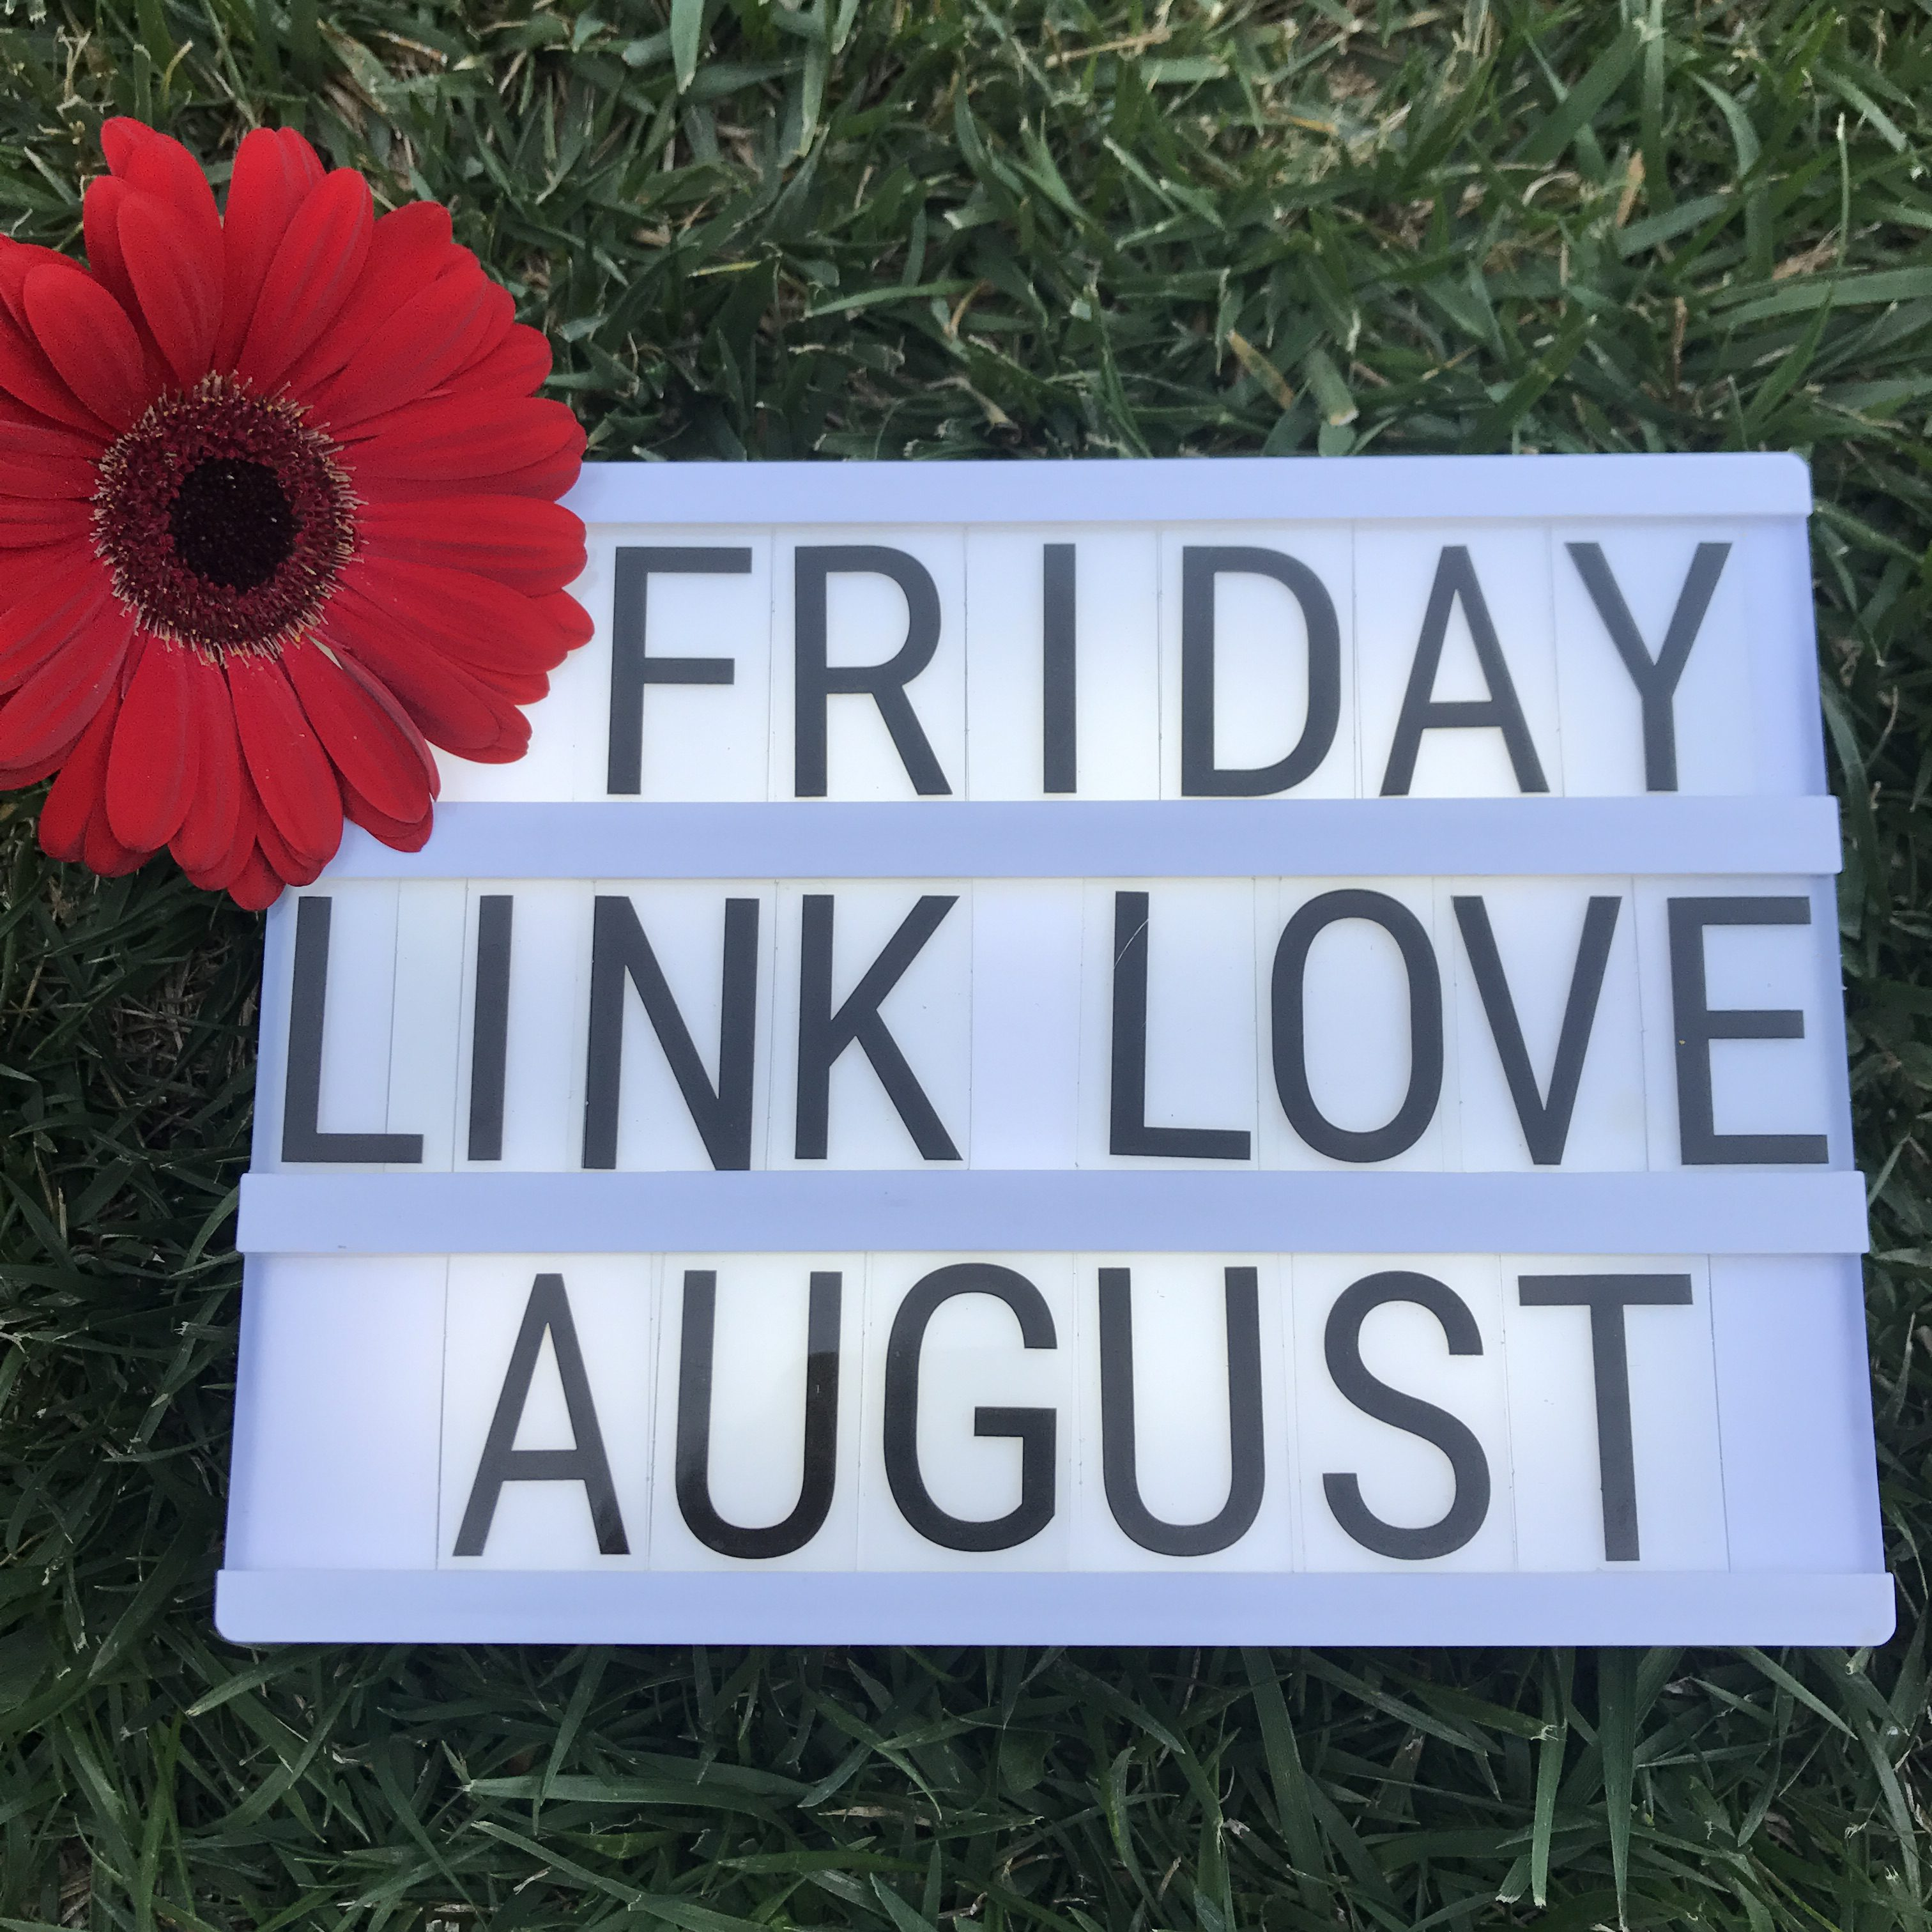 Friday Link Love August